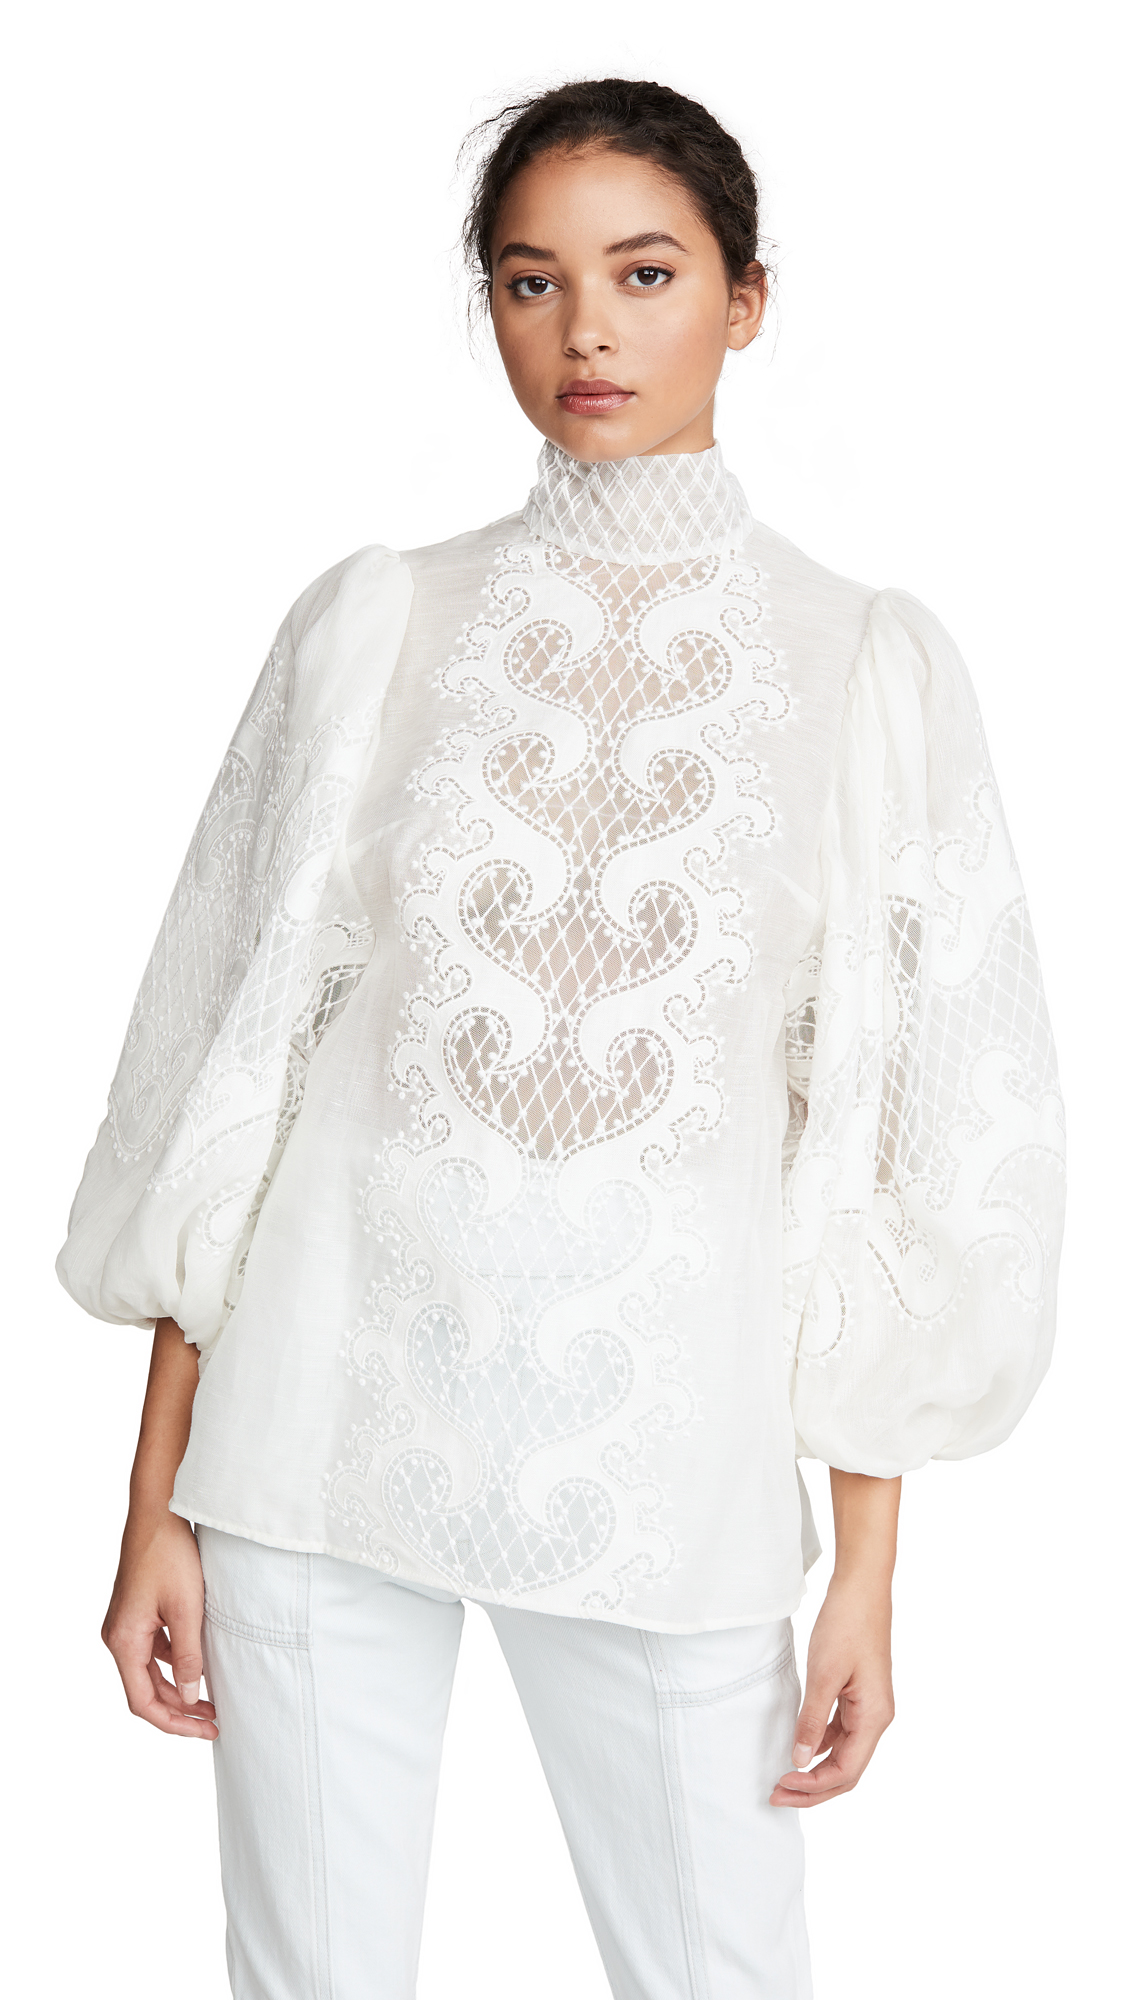 Zimmermann Brightside Knot Embroidered Blouse - 30% Off Sale